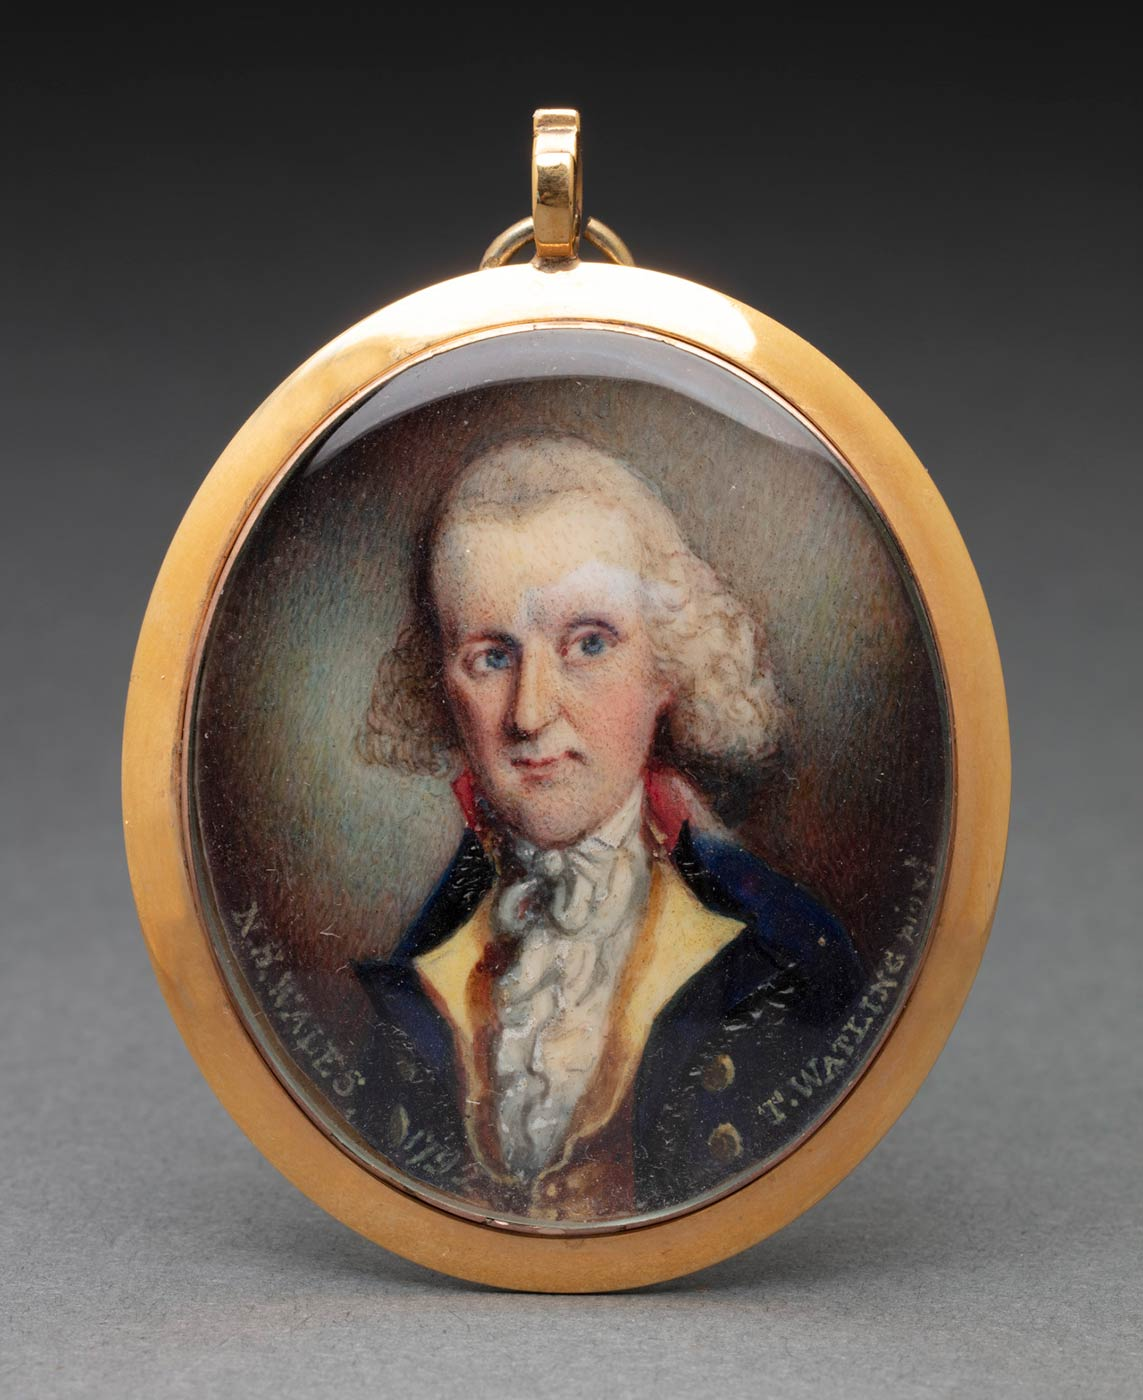 An oval painted portrait depicting a man with white hair wearing a blue coat over a gold vest and a white shirt. Written along the bottom edge is 'N.S. WALES 1792 T. WATLING [?]'. The portrait is mounted in a gold frame and covered in glass. There is a loop at the top of the frame attached to which is a ring. - click to view larger image